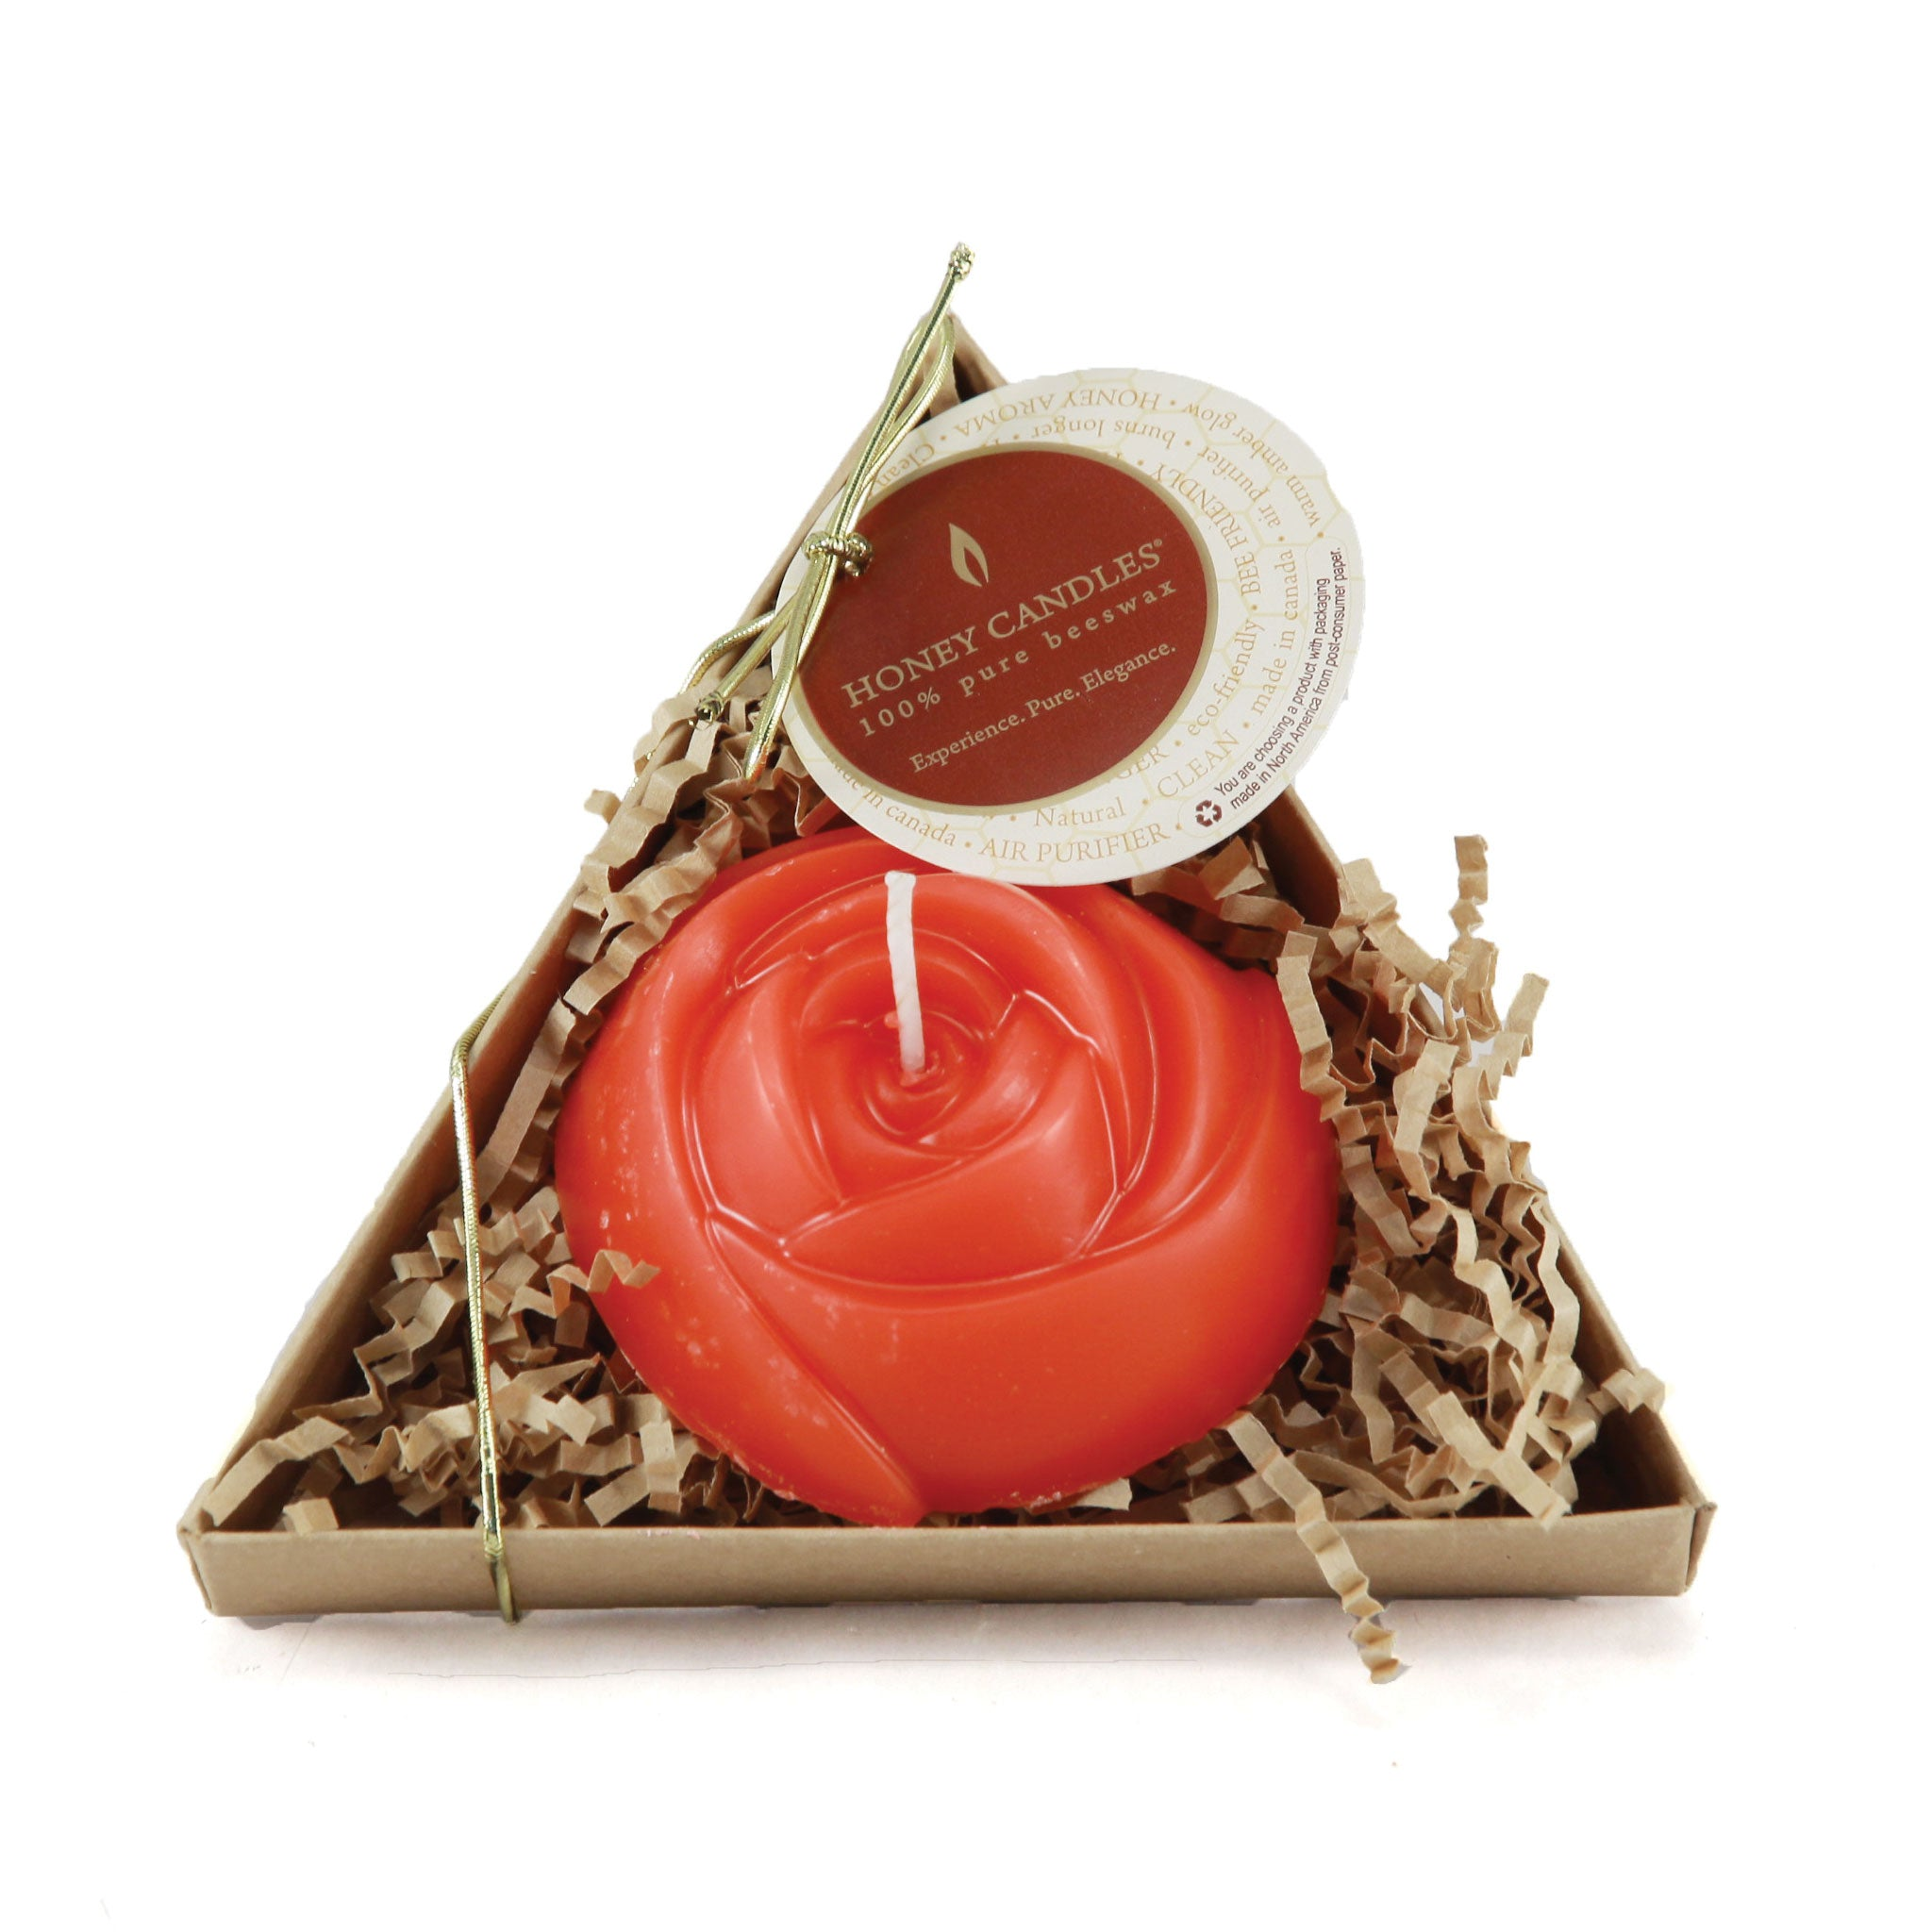 Beautifully shaped red rose candle nestled in a triangle gift box for any occasion